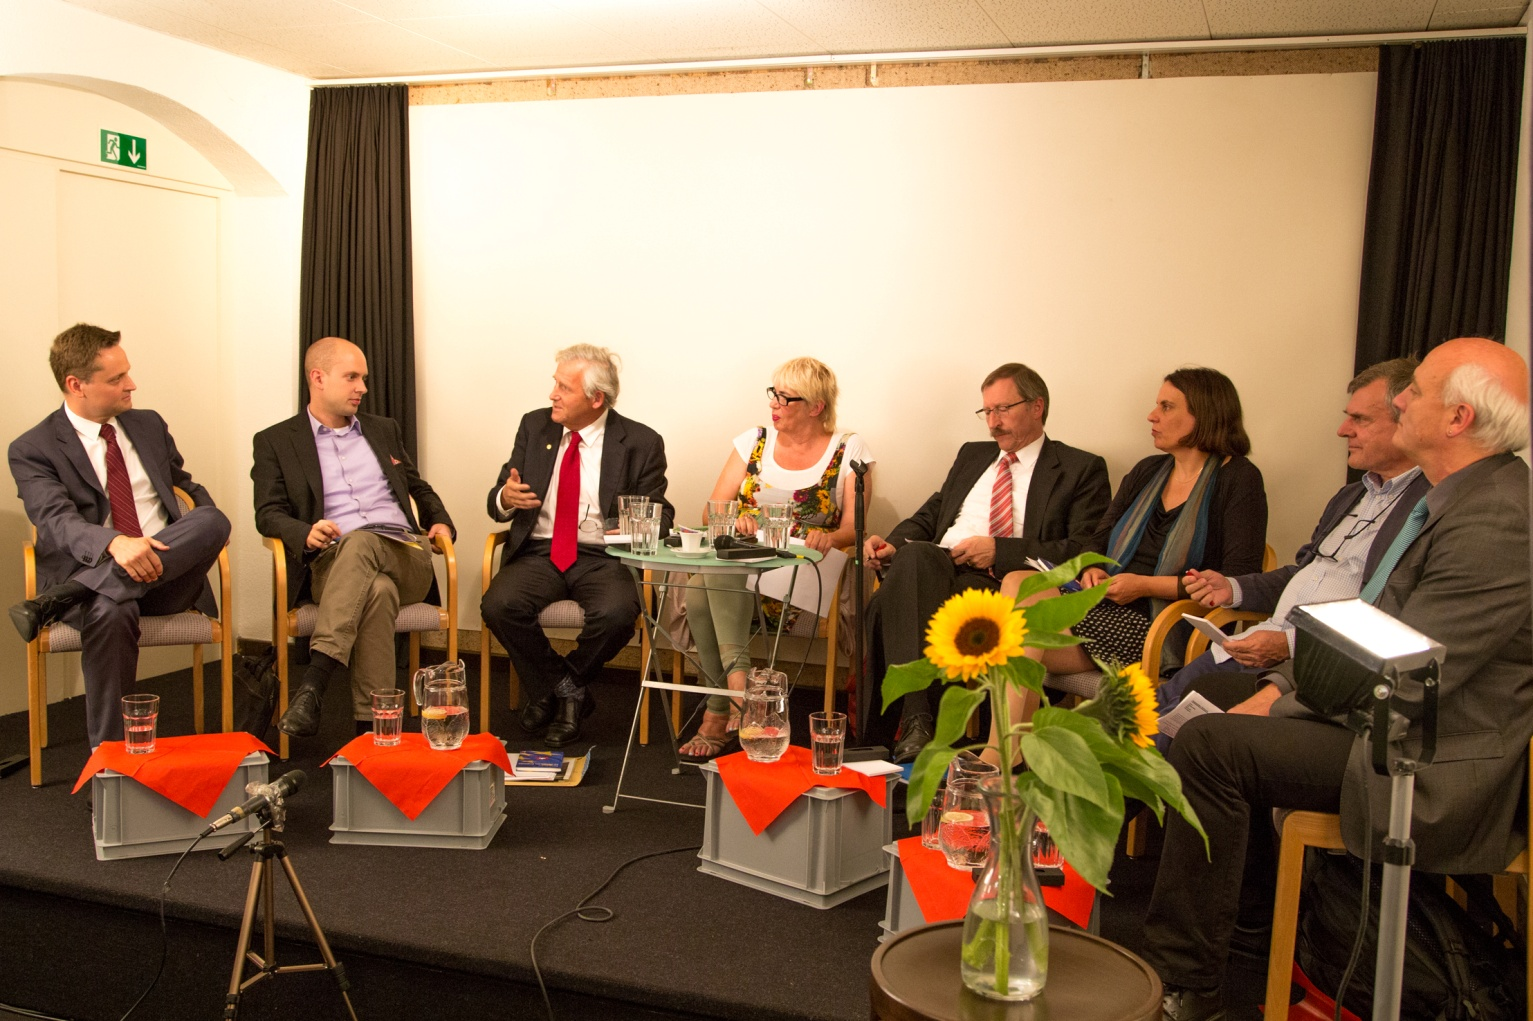 2014_09_26 Podiumsdiskussion Basel